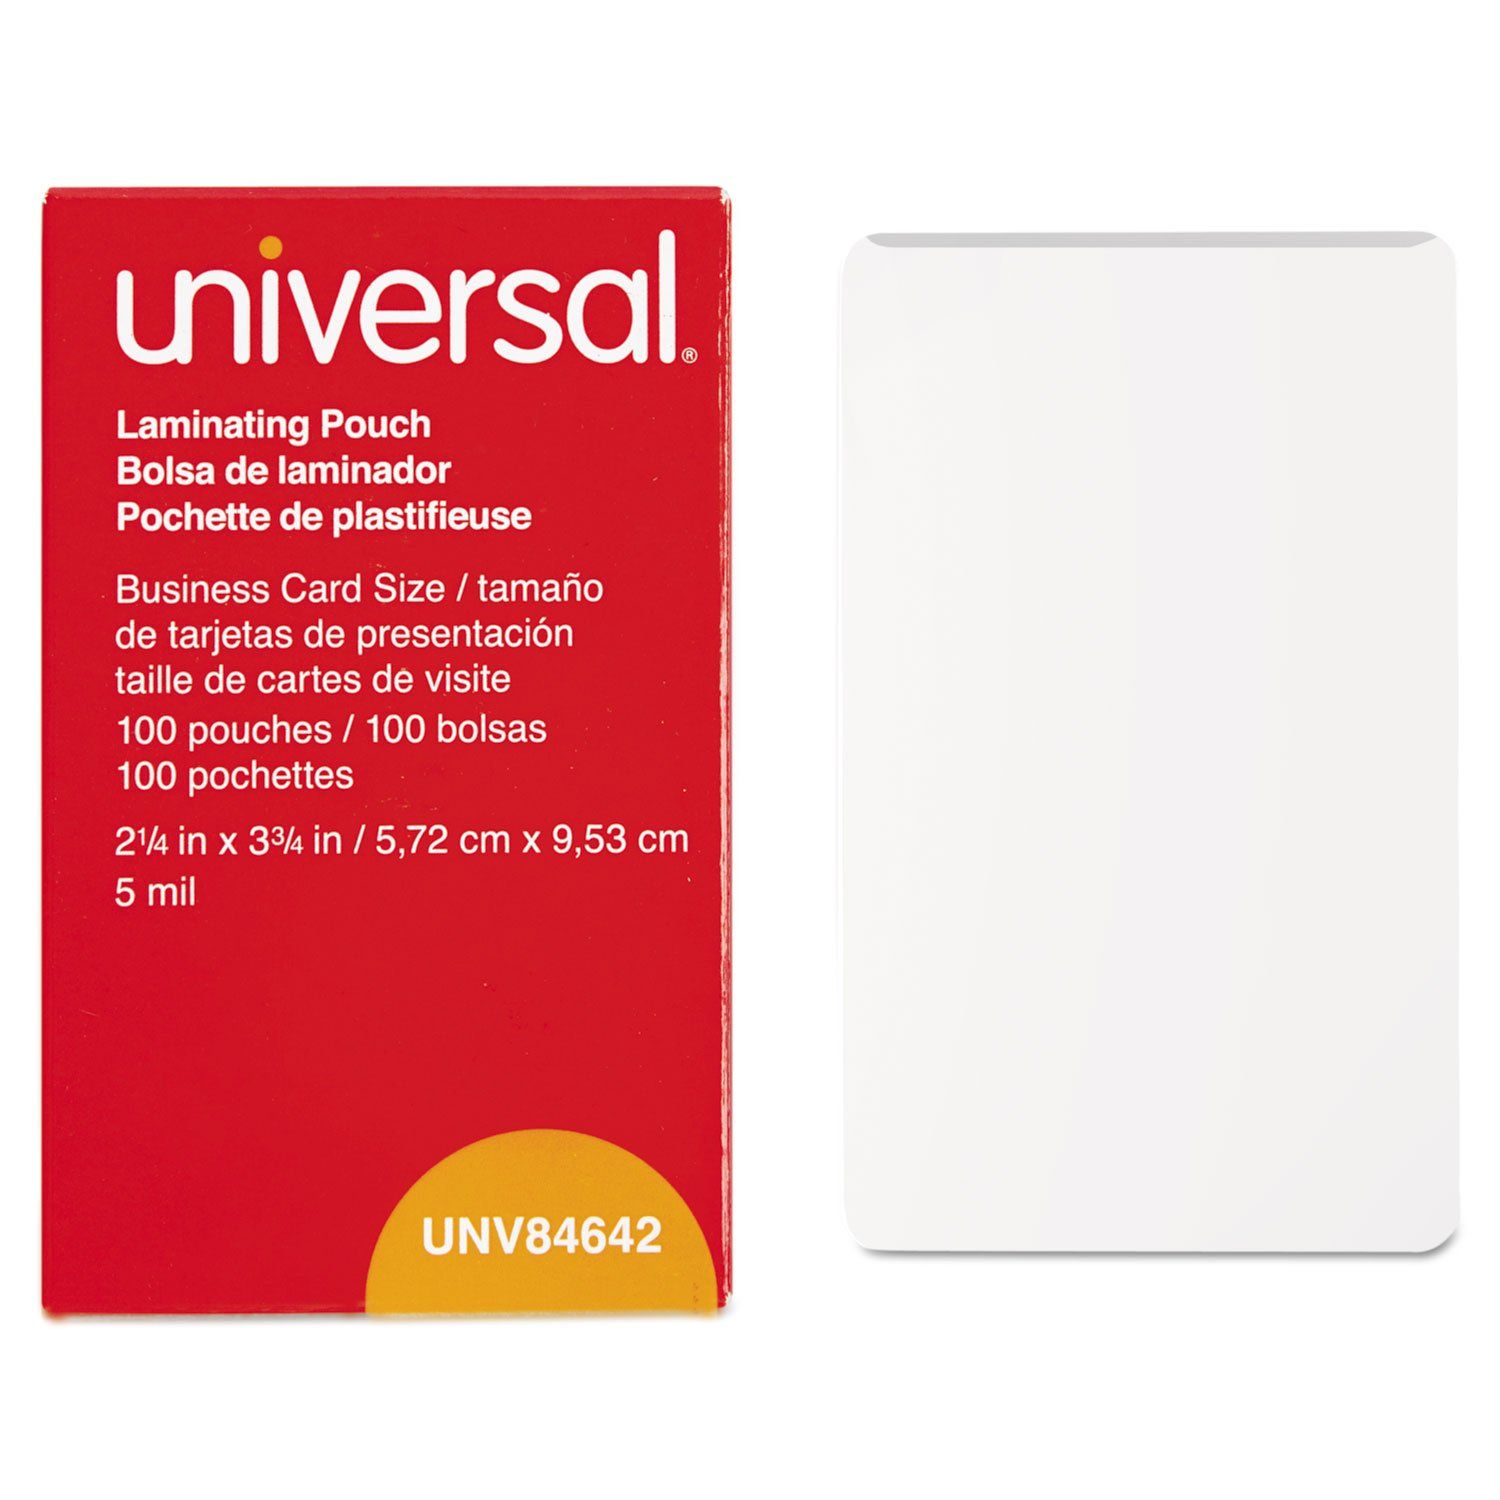 Universal Unv84642 100 Per Box Clear Laminating Pouches 2 1 4 Inch X 3 3 4 Inch 20 Want Additional Info In 2020 Business Card Size Card Sizes Laminated Machine